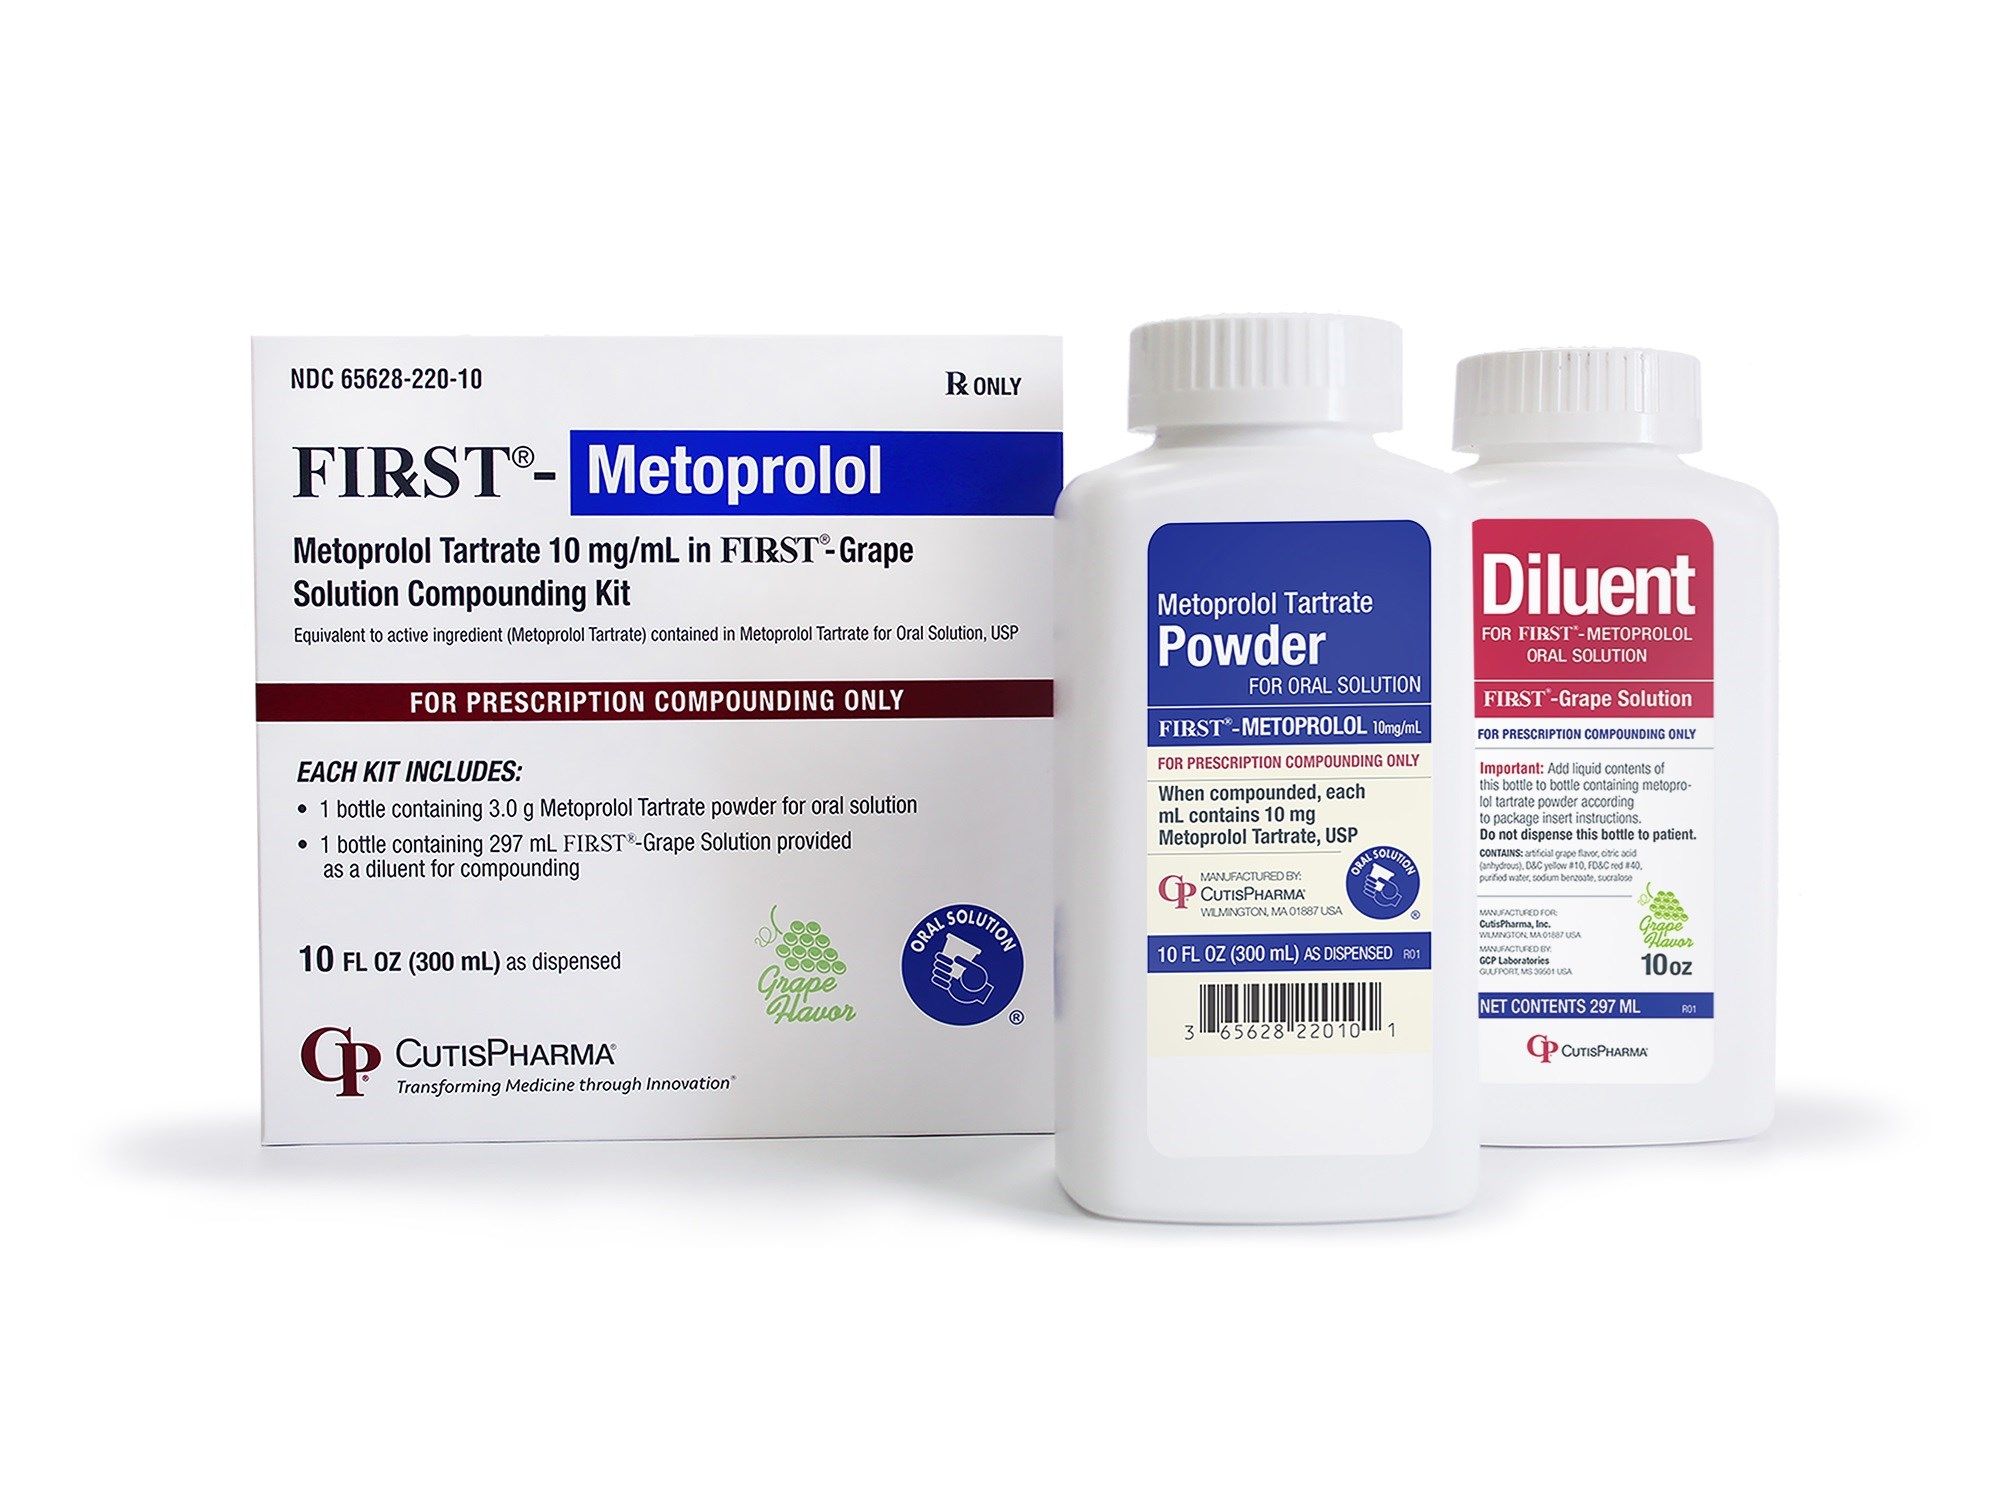 FIRST-Metoprolol Unit-of-Use Compounding Kit Now Available